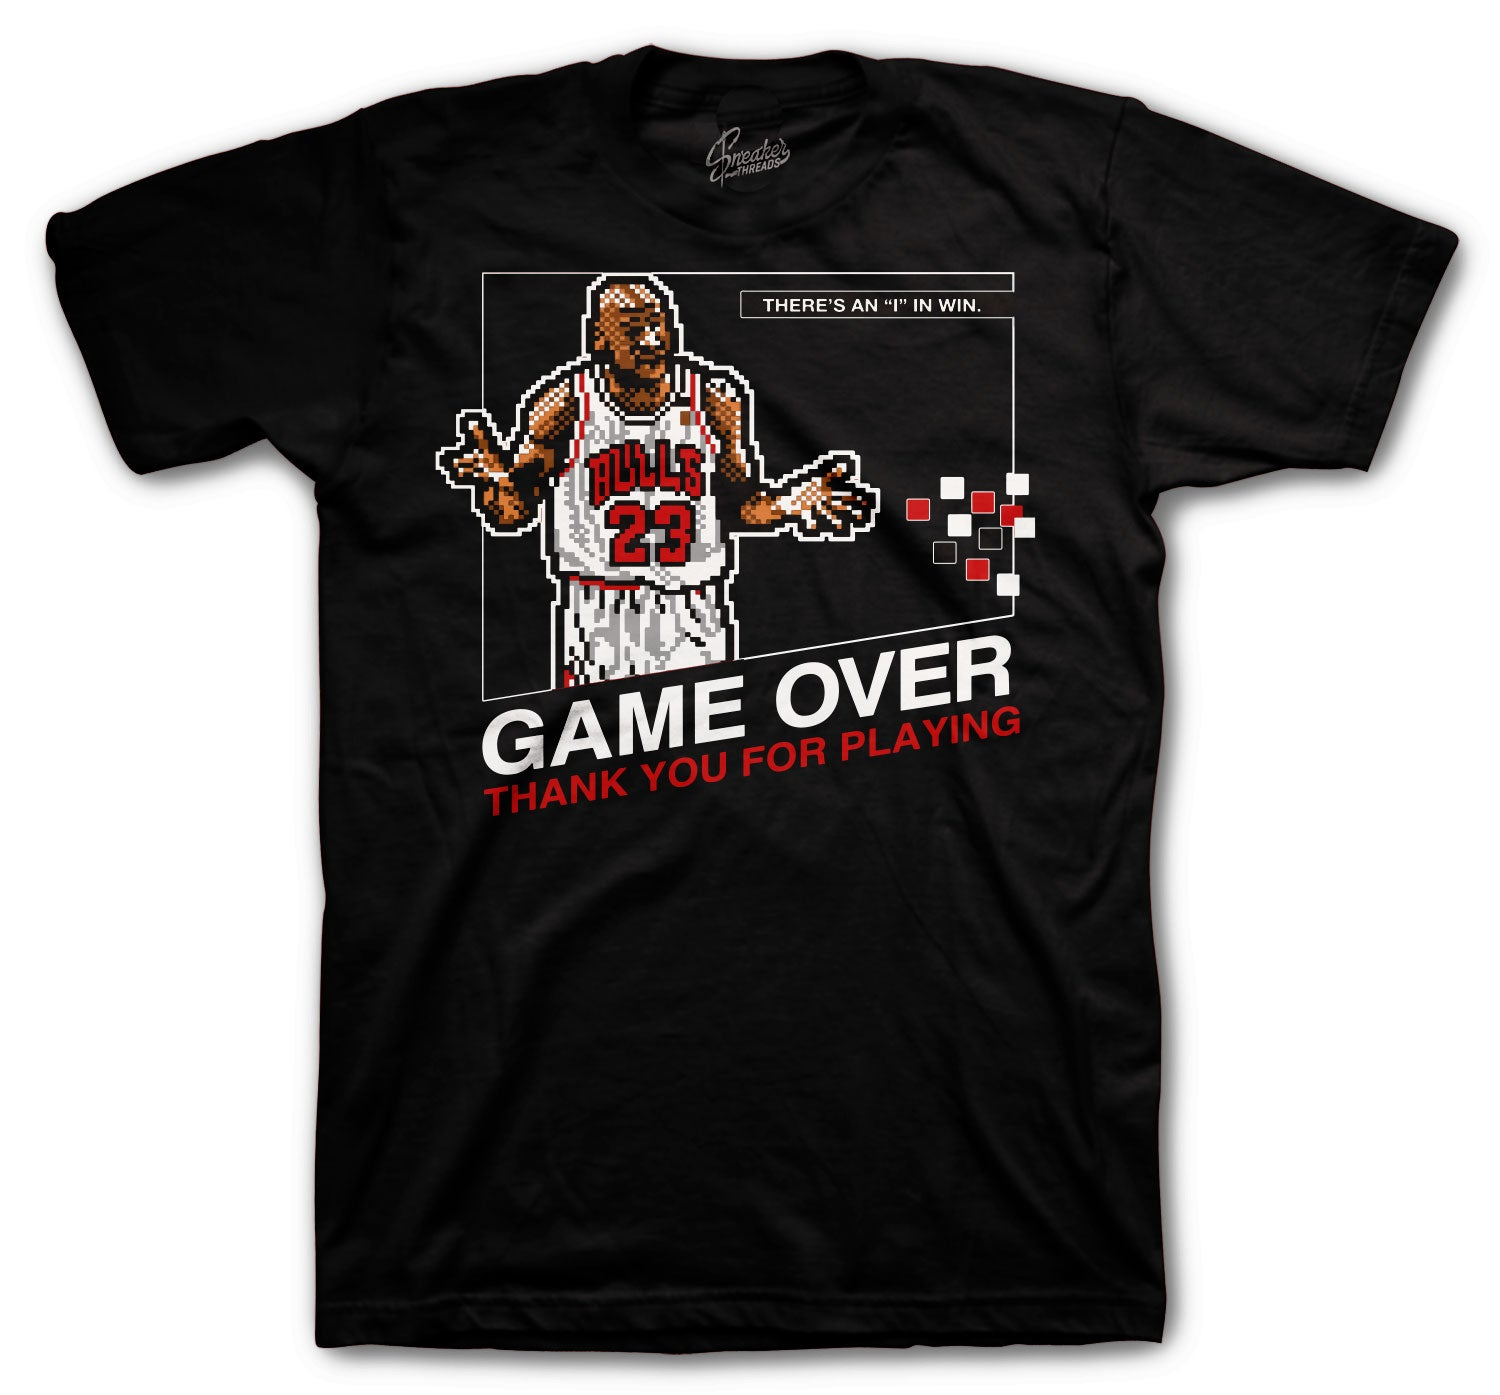 Jordan 6 Carmine Shirt - Game Over - Black